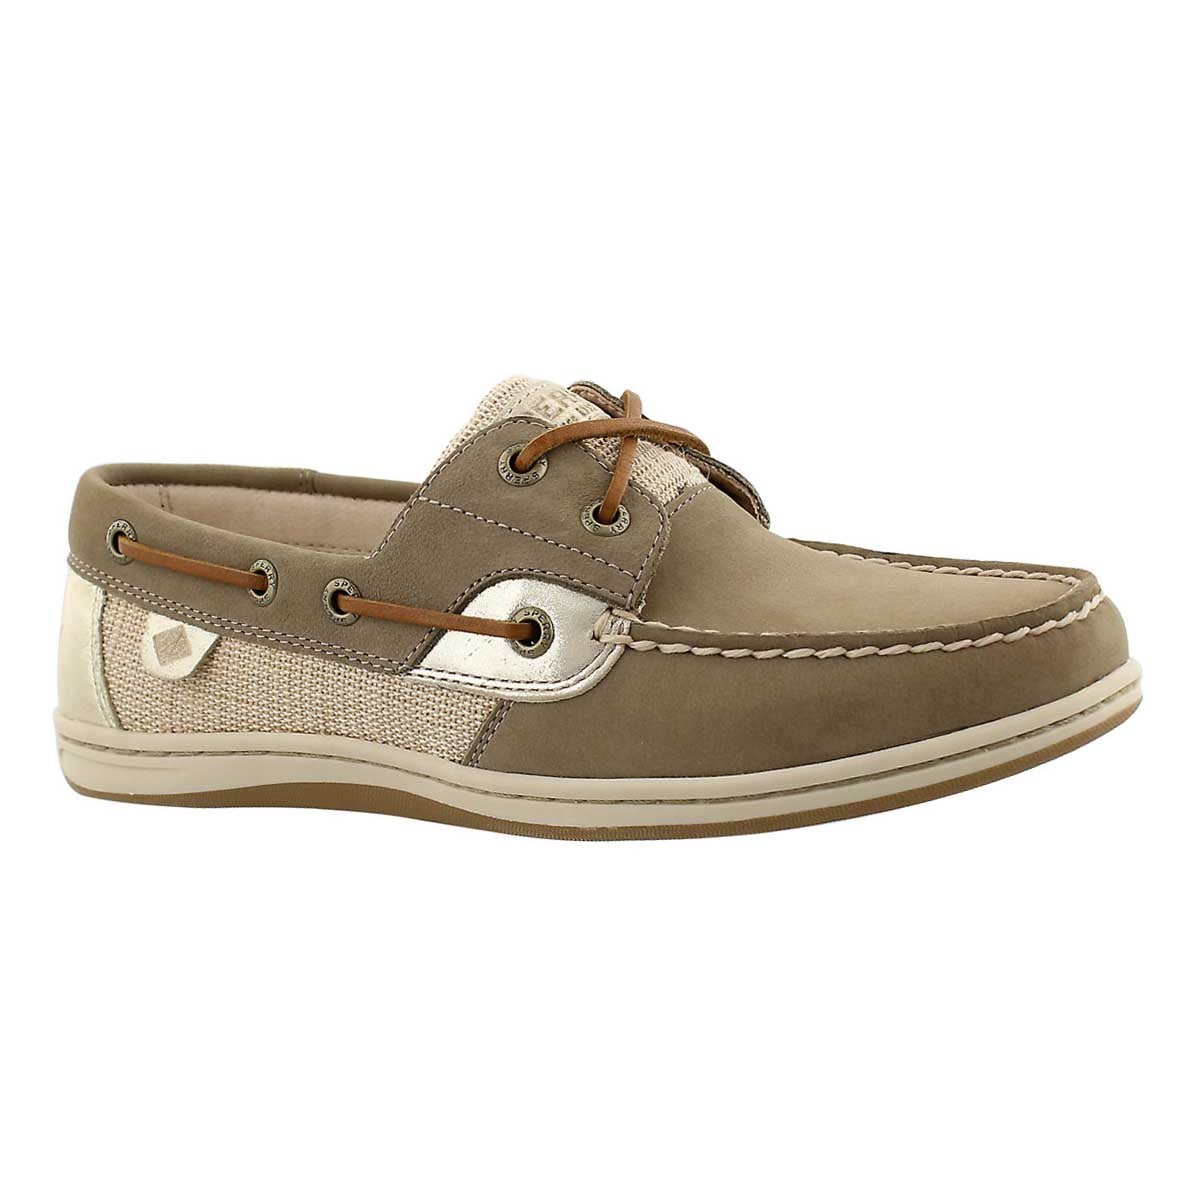 Women's KOIFISH Metallic taupe boat shoes